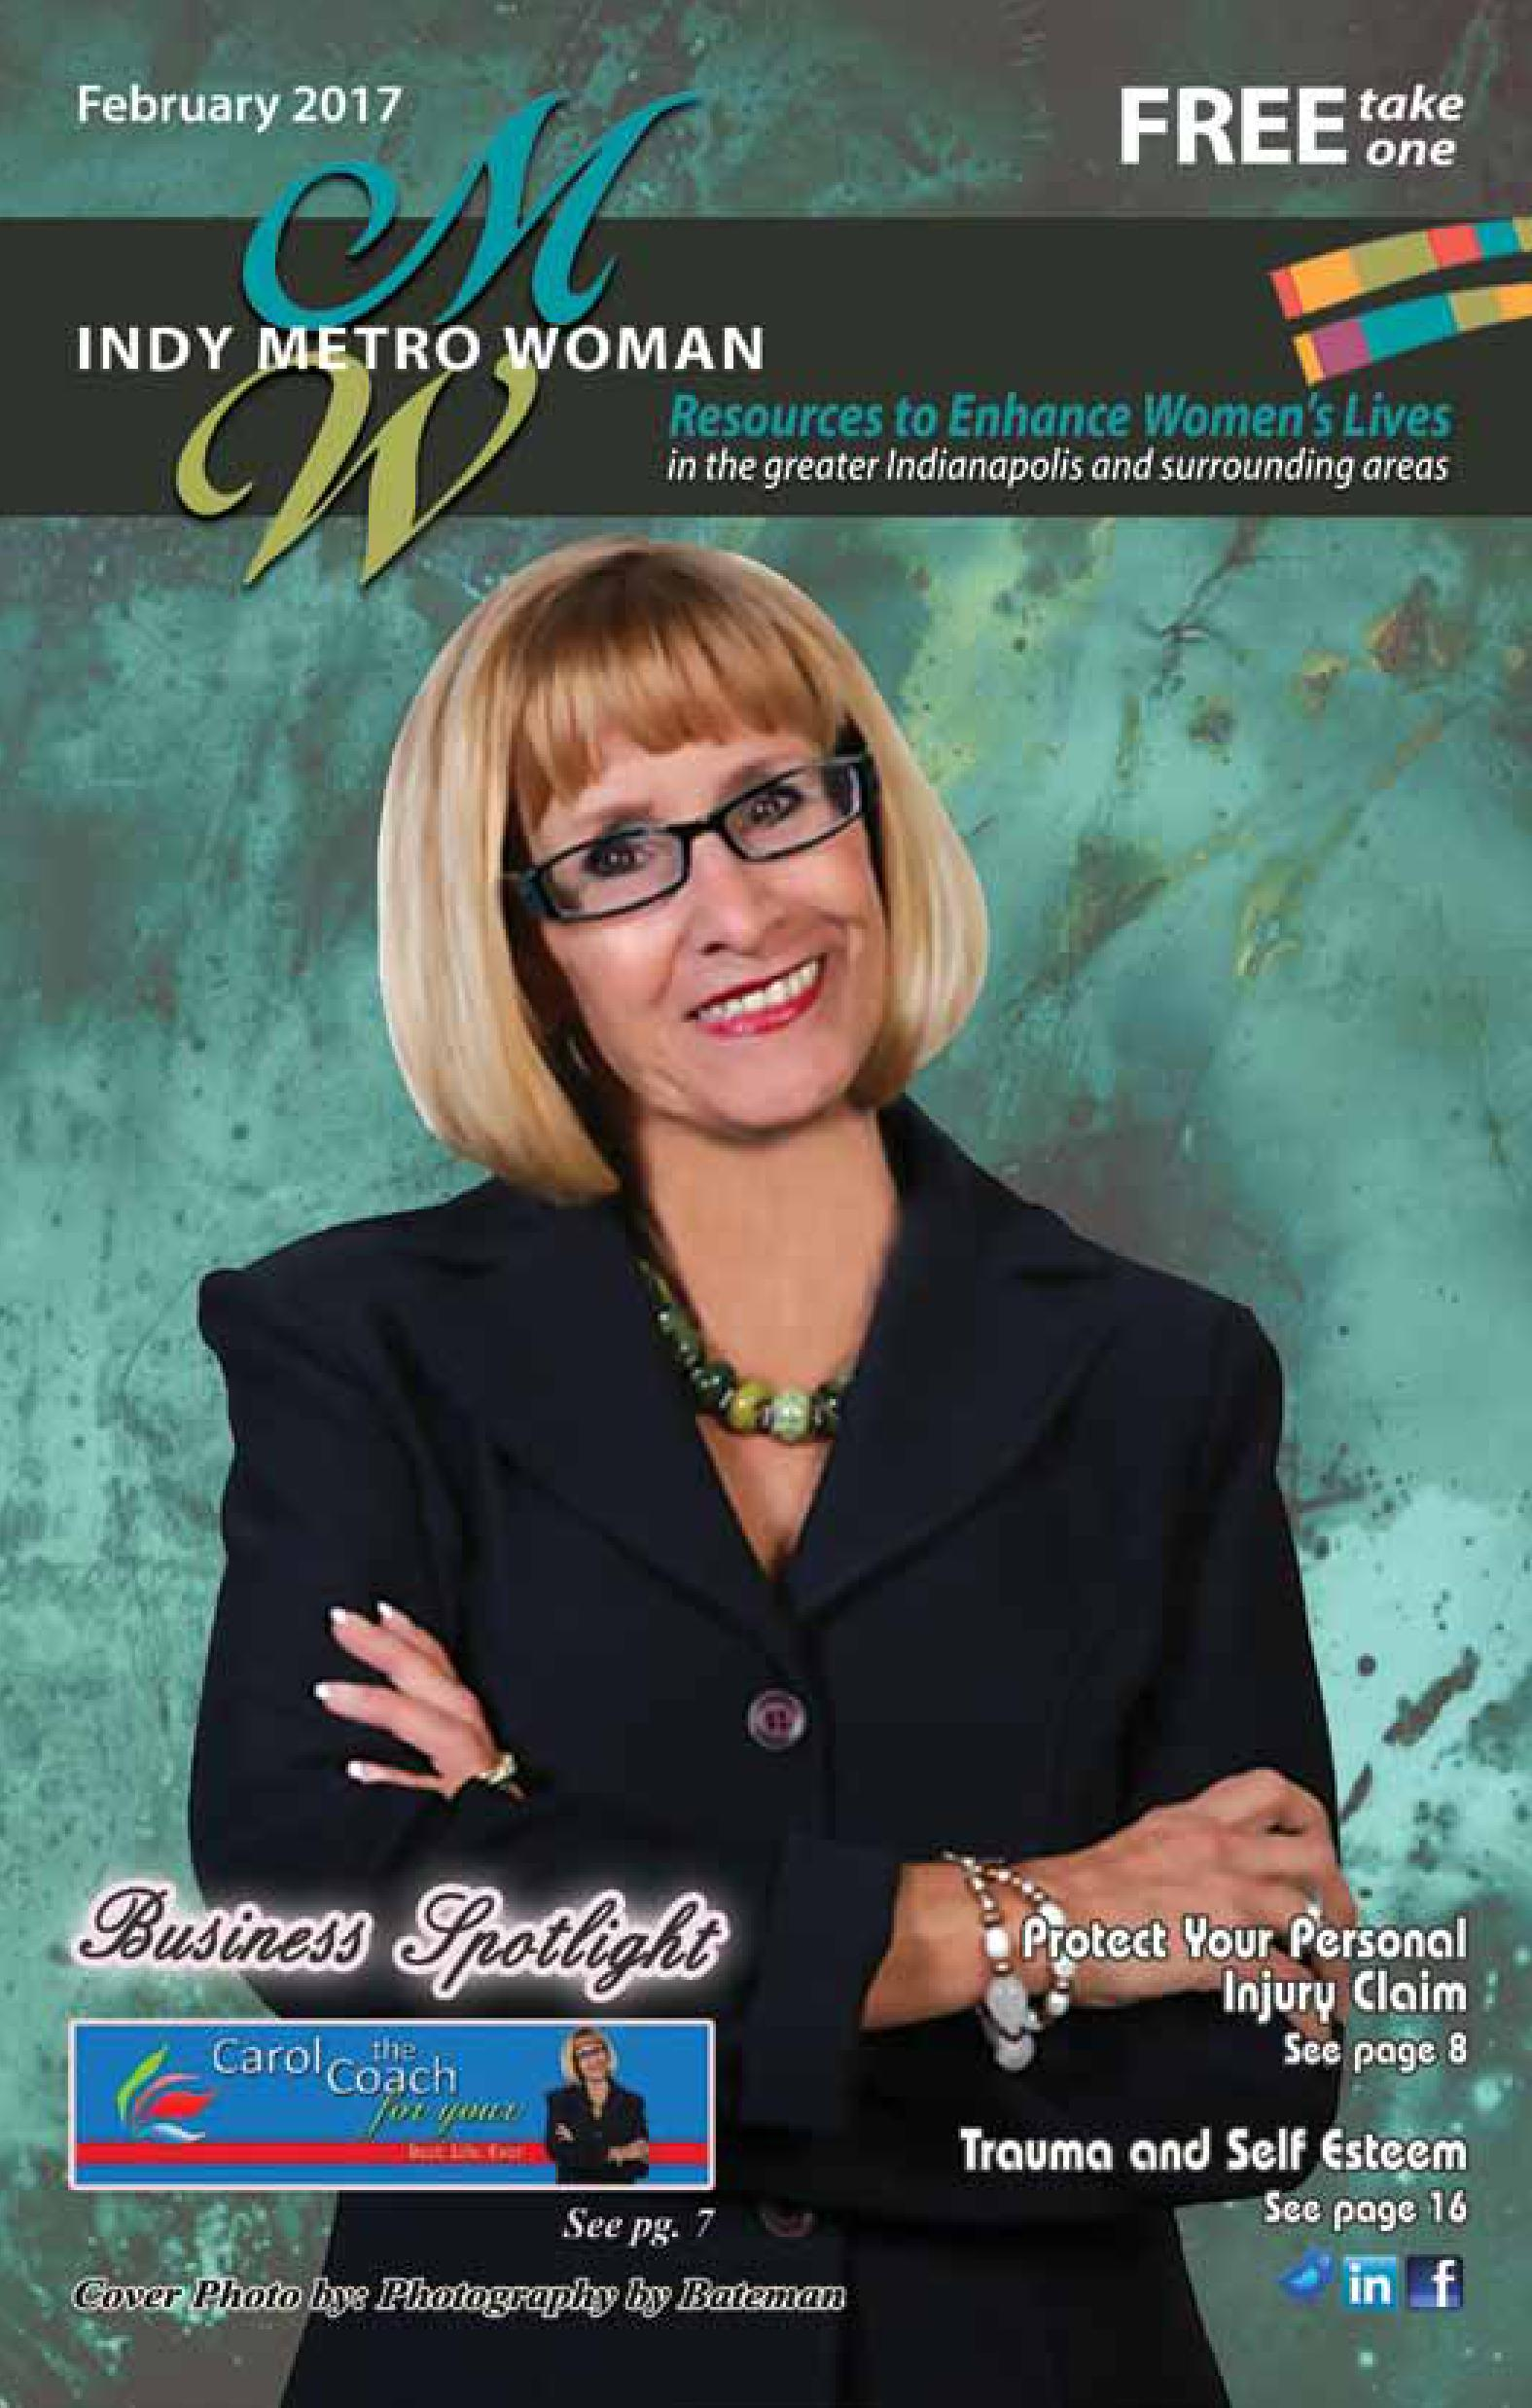 Indy Metro Woman February 2017 Cover.jpg